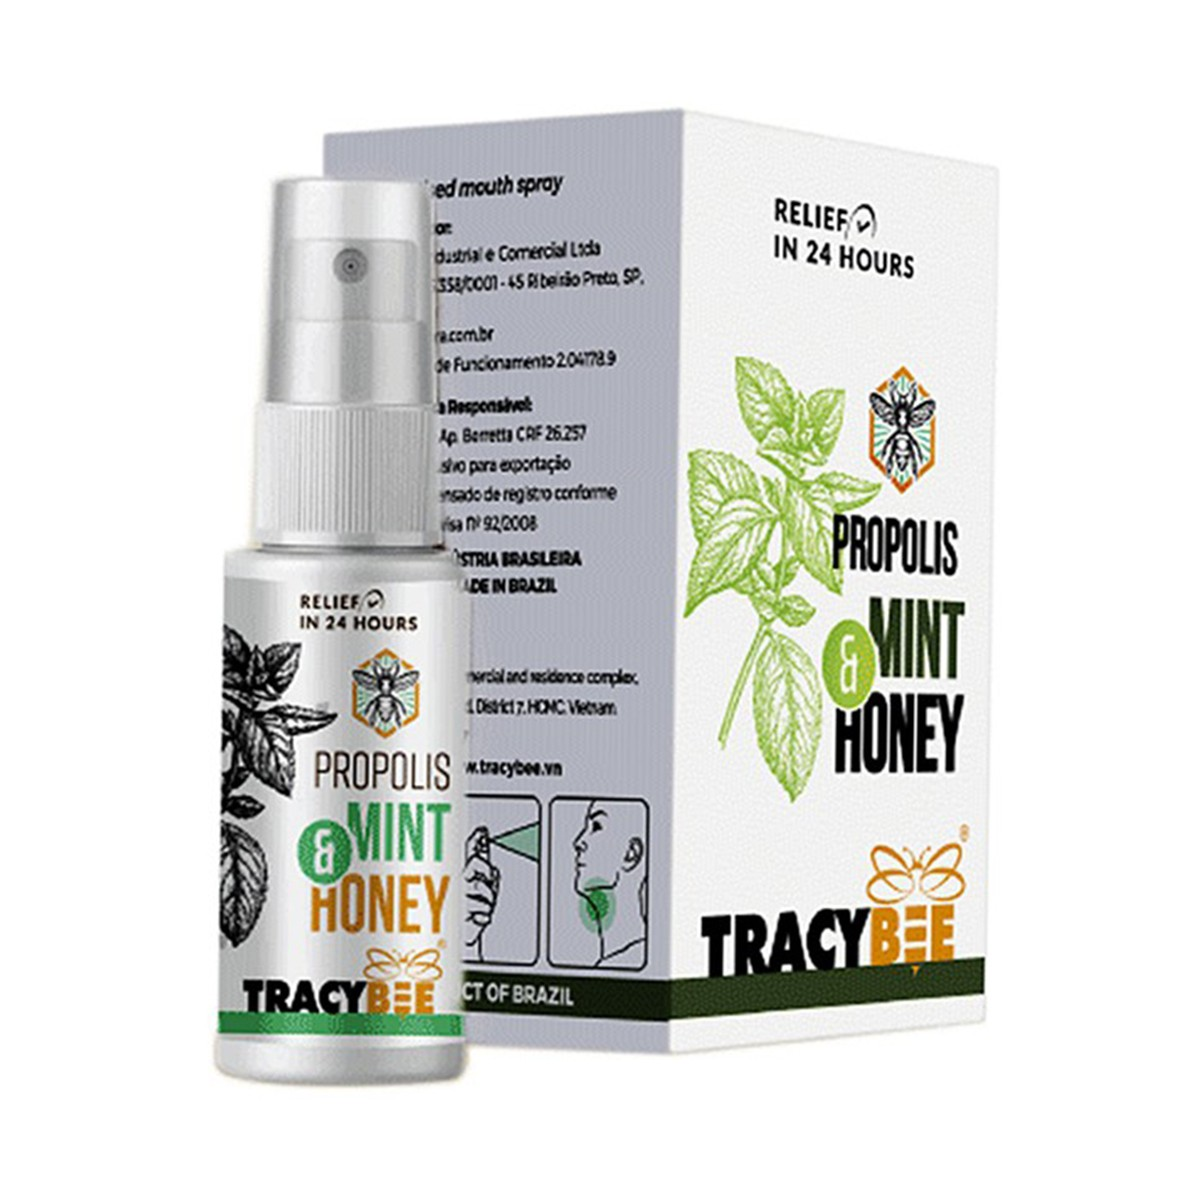 Keo Ong Tracybee Propolis Mint & Honey 30Ml